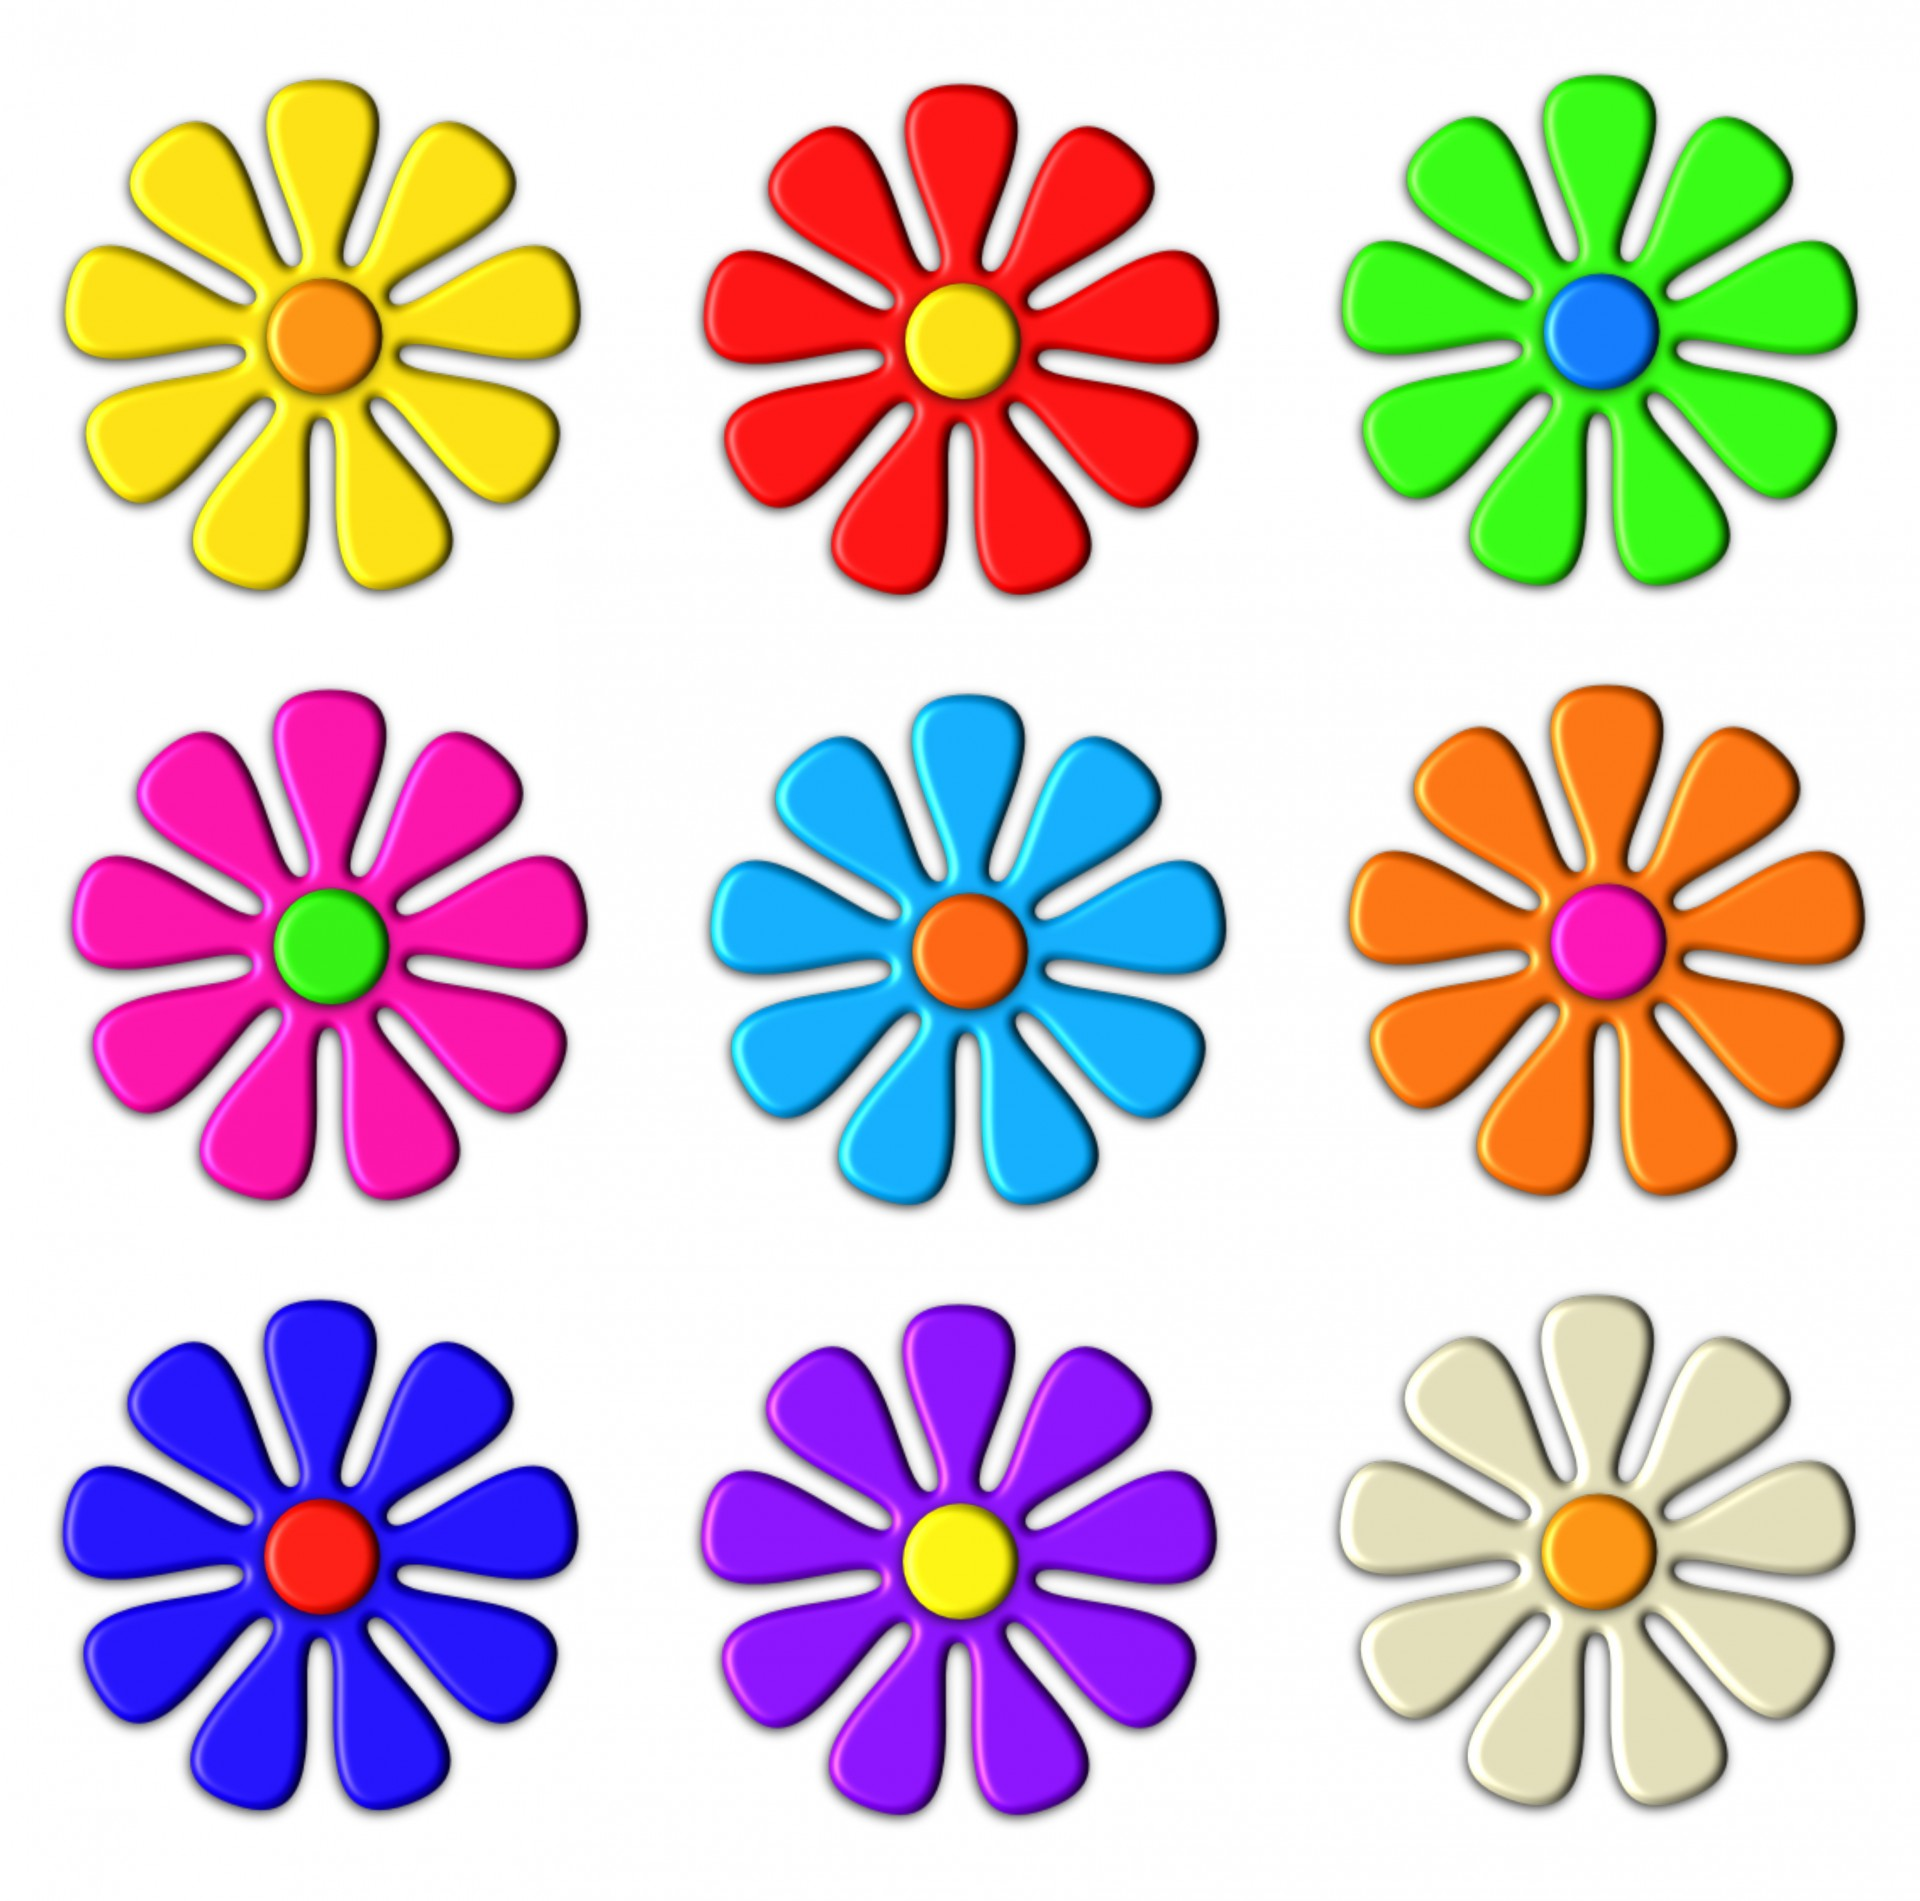 op art floral graphics - photo #9